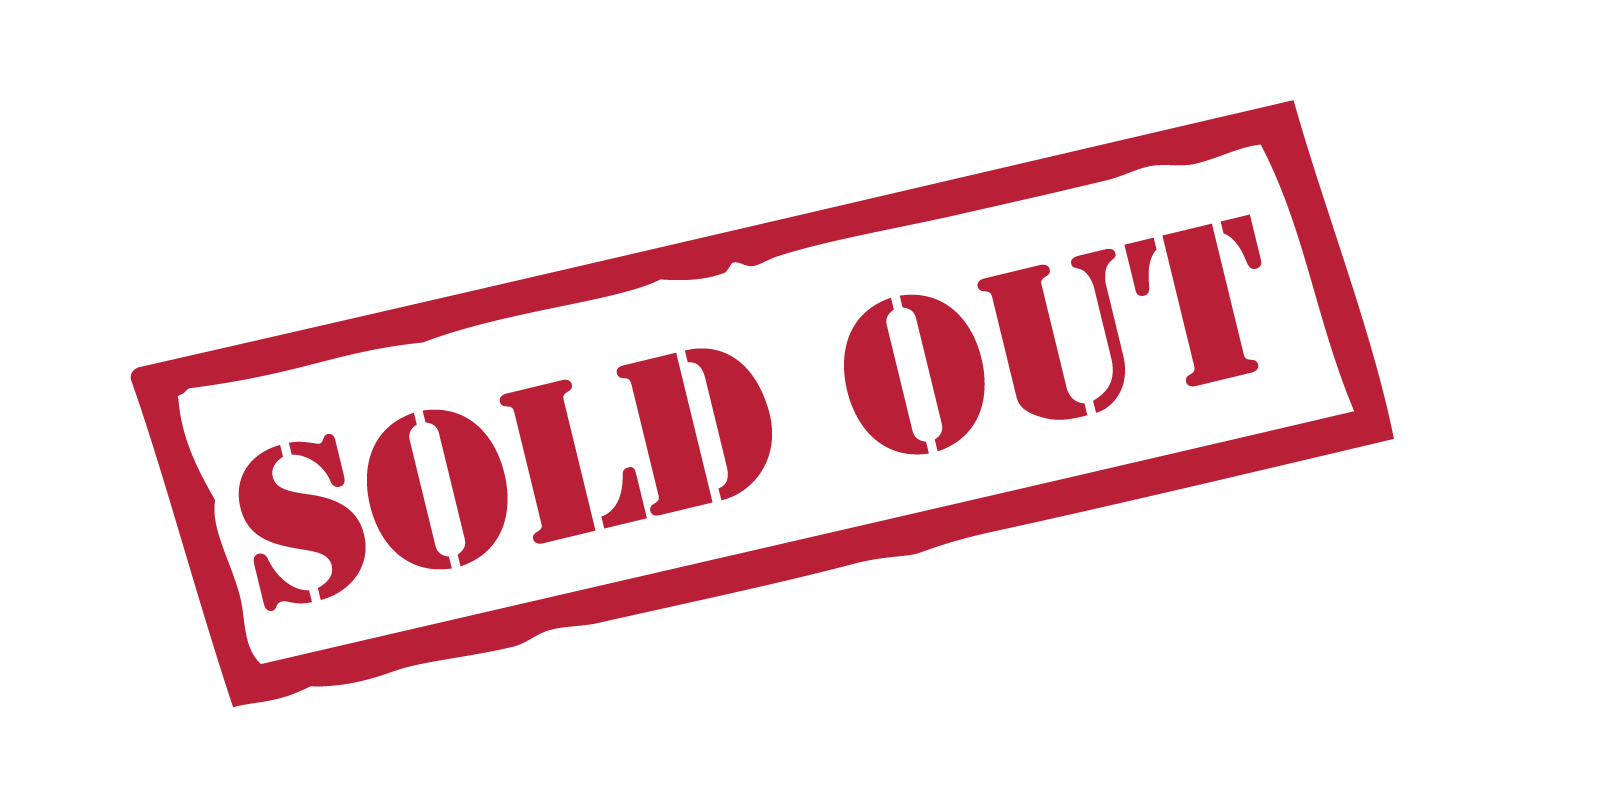 sold-out-png-1